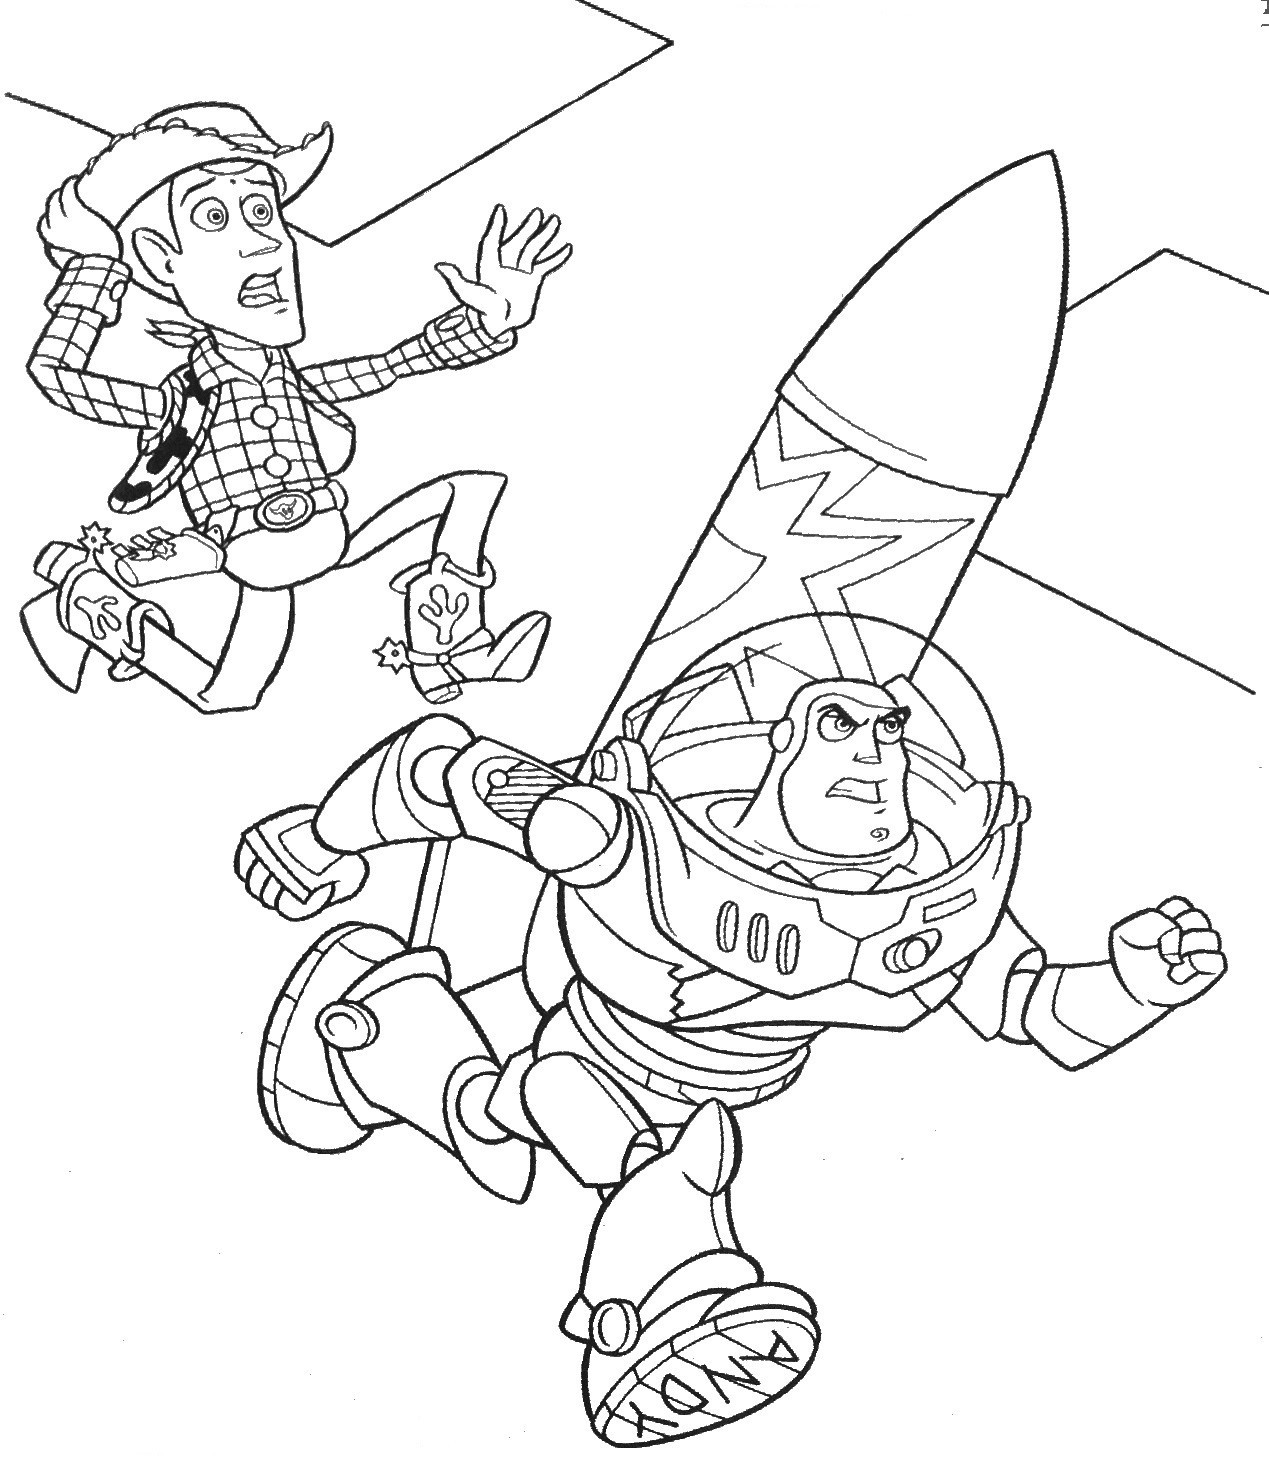 woody toy story coloring pages woody toy story 4 disney pixar coloring pages toy woody story toy coloring pages